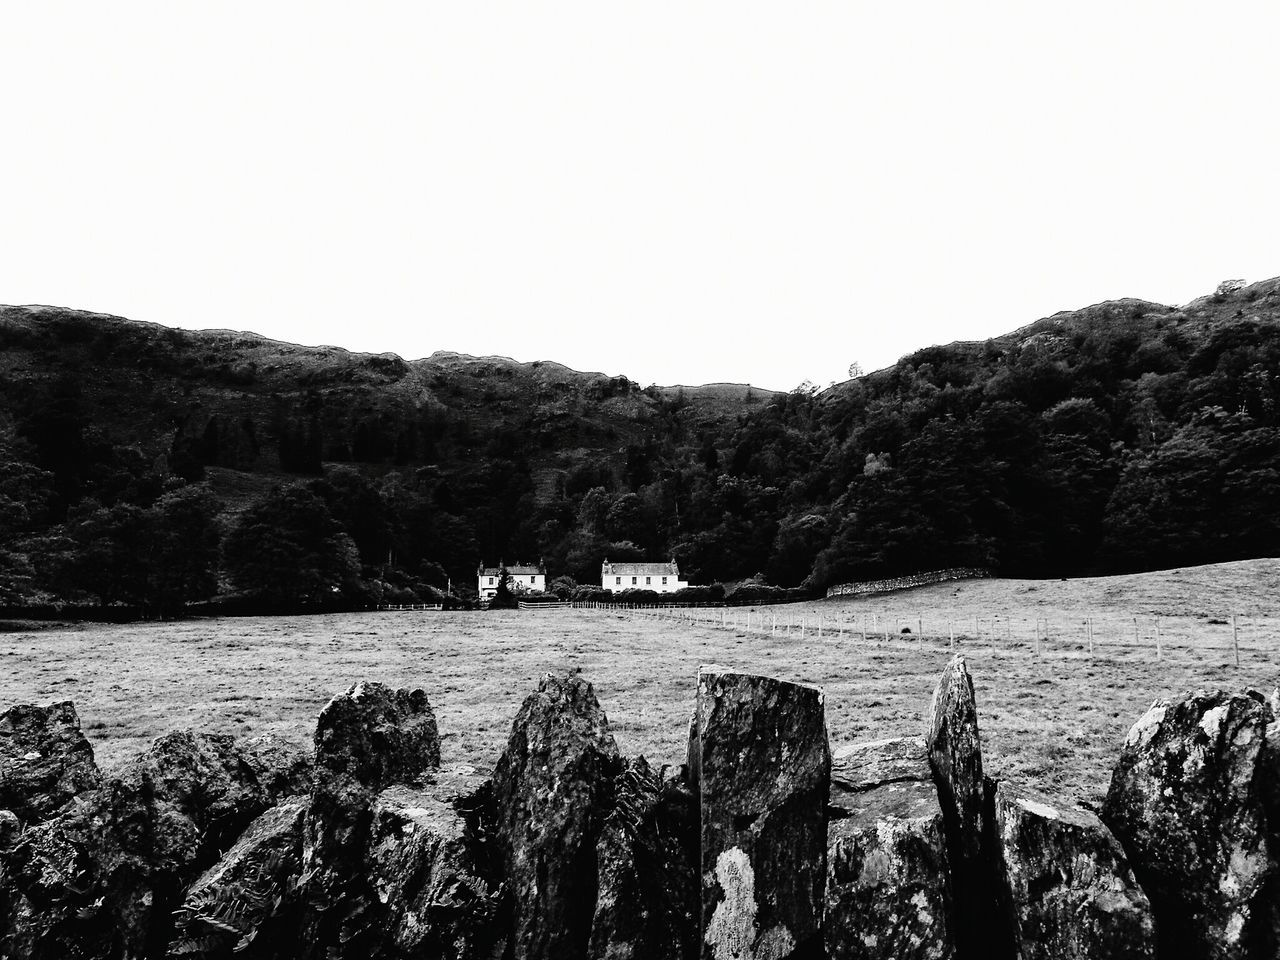 Grass Tree Landscape Nature Archival Growth Tranquility Rural Scene Outdoors Agriculture Beauty In Nature Lush - Description Day No People Sky Yorkshire Dales Nationalpark EyeEm Best Shots Nature Photography First Eyeem Photo Monochrome Naturelovers EyeEm Best Edits EyeEm Gallery Monochrome Photography